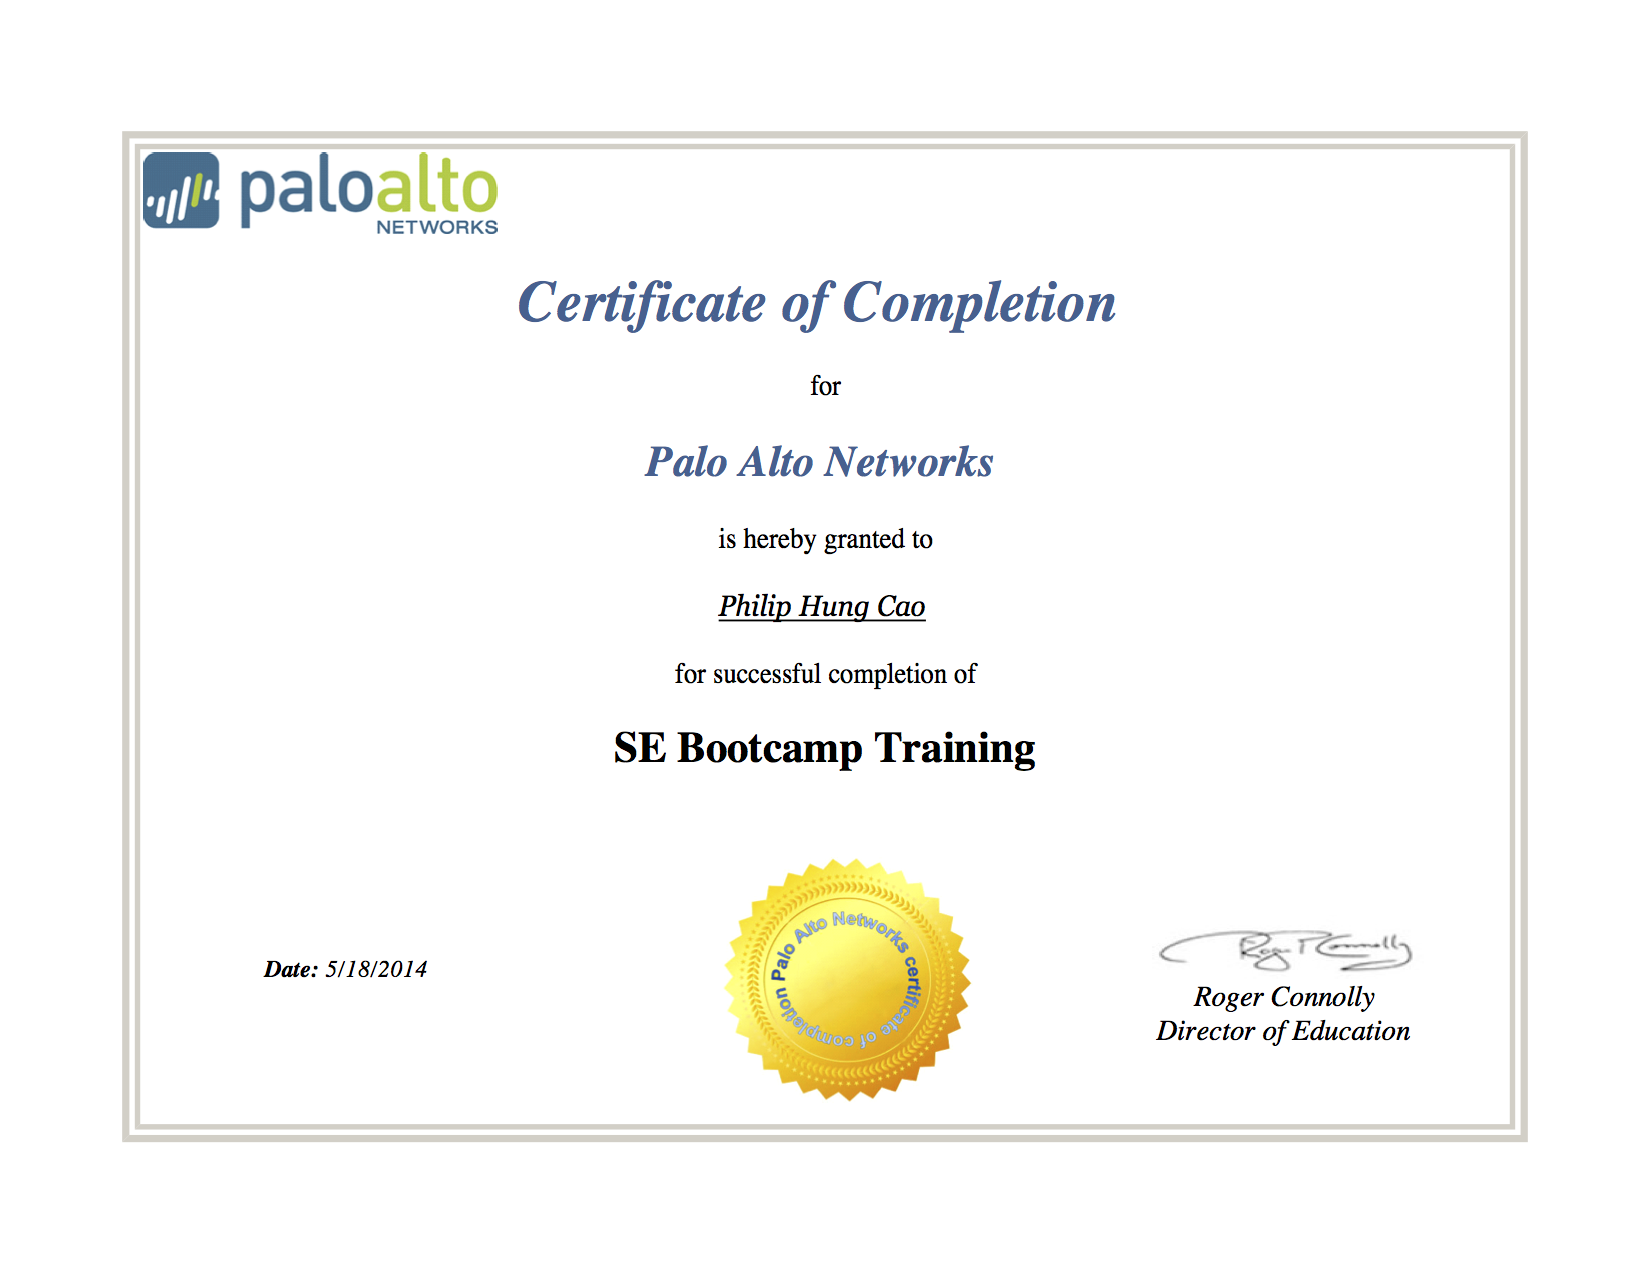 [2014] Philip Hung Cao   SE Bootcamp Training   Certificate Of Completion  Certificate Of Completion Training